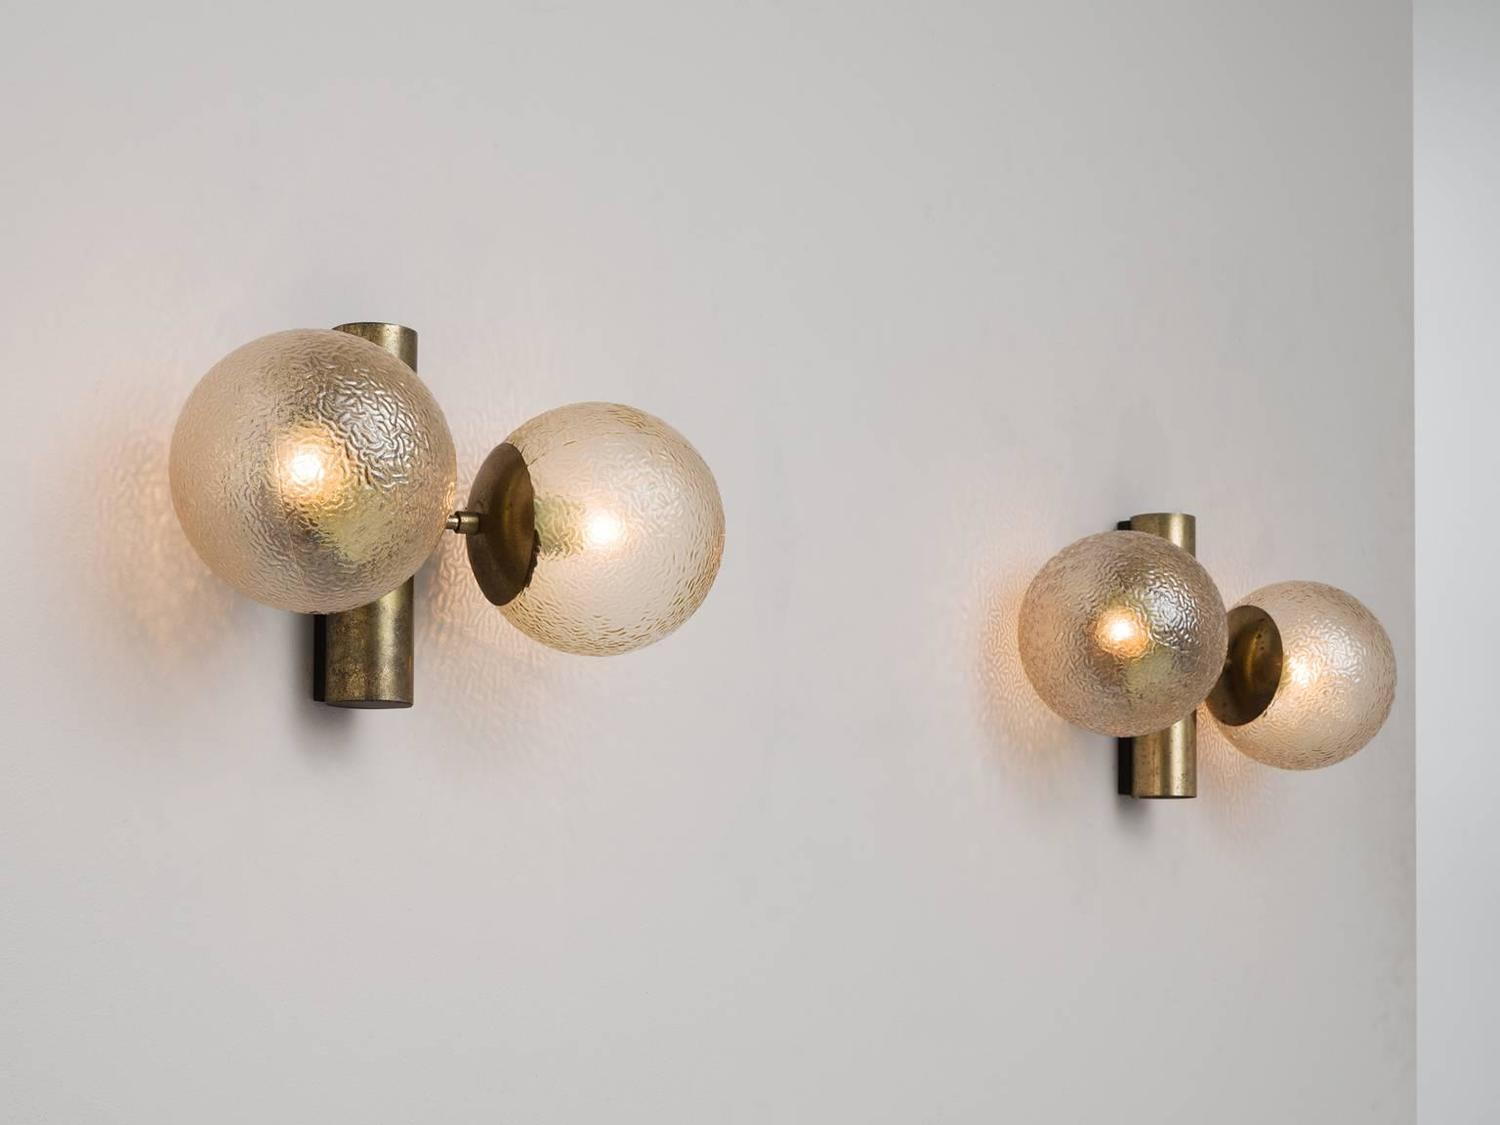 Set of 4 Brass Colored Wall Lights with Structured Glass For Sale at 1stdibs